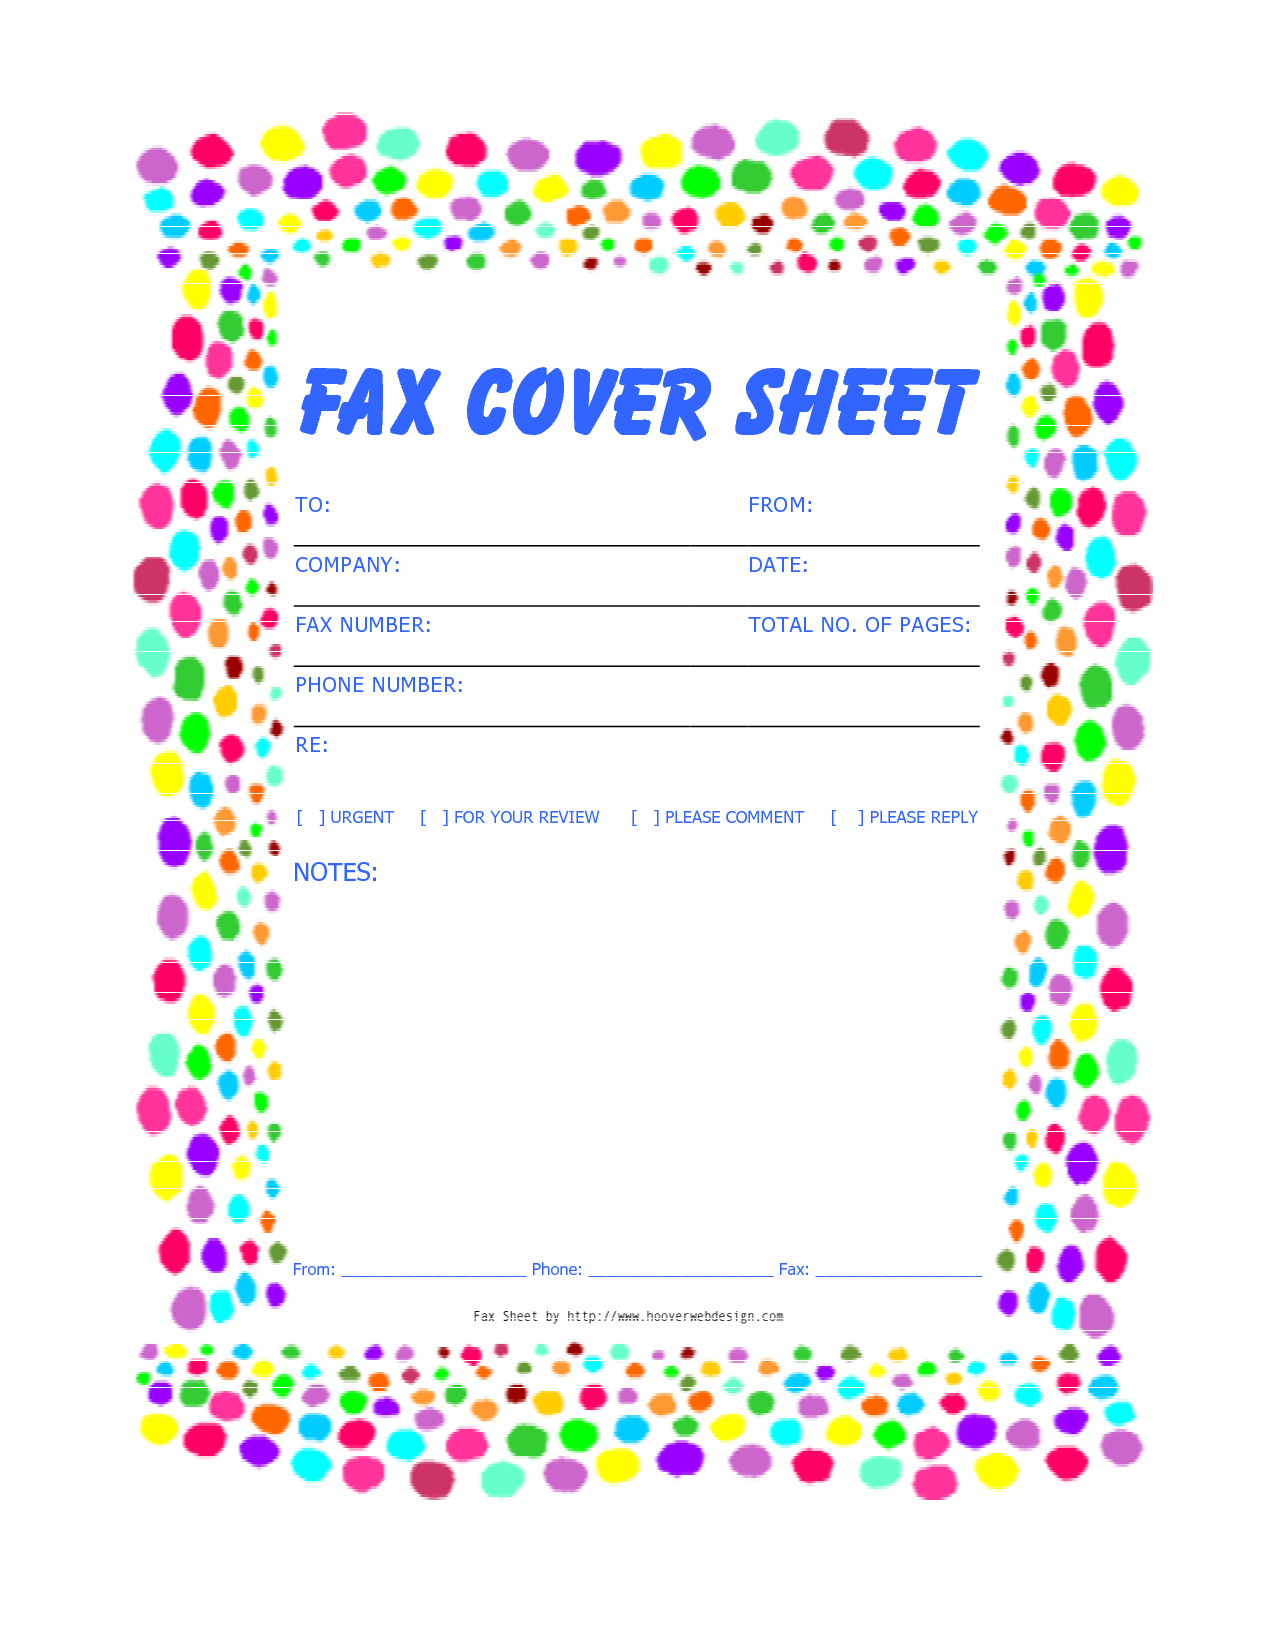 Clipart fax cover sheet royalty free Clipart fax cover sheet - ClipartFox royalty free